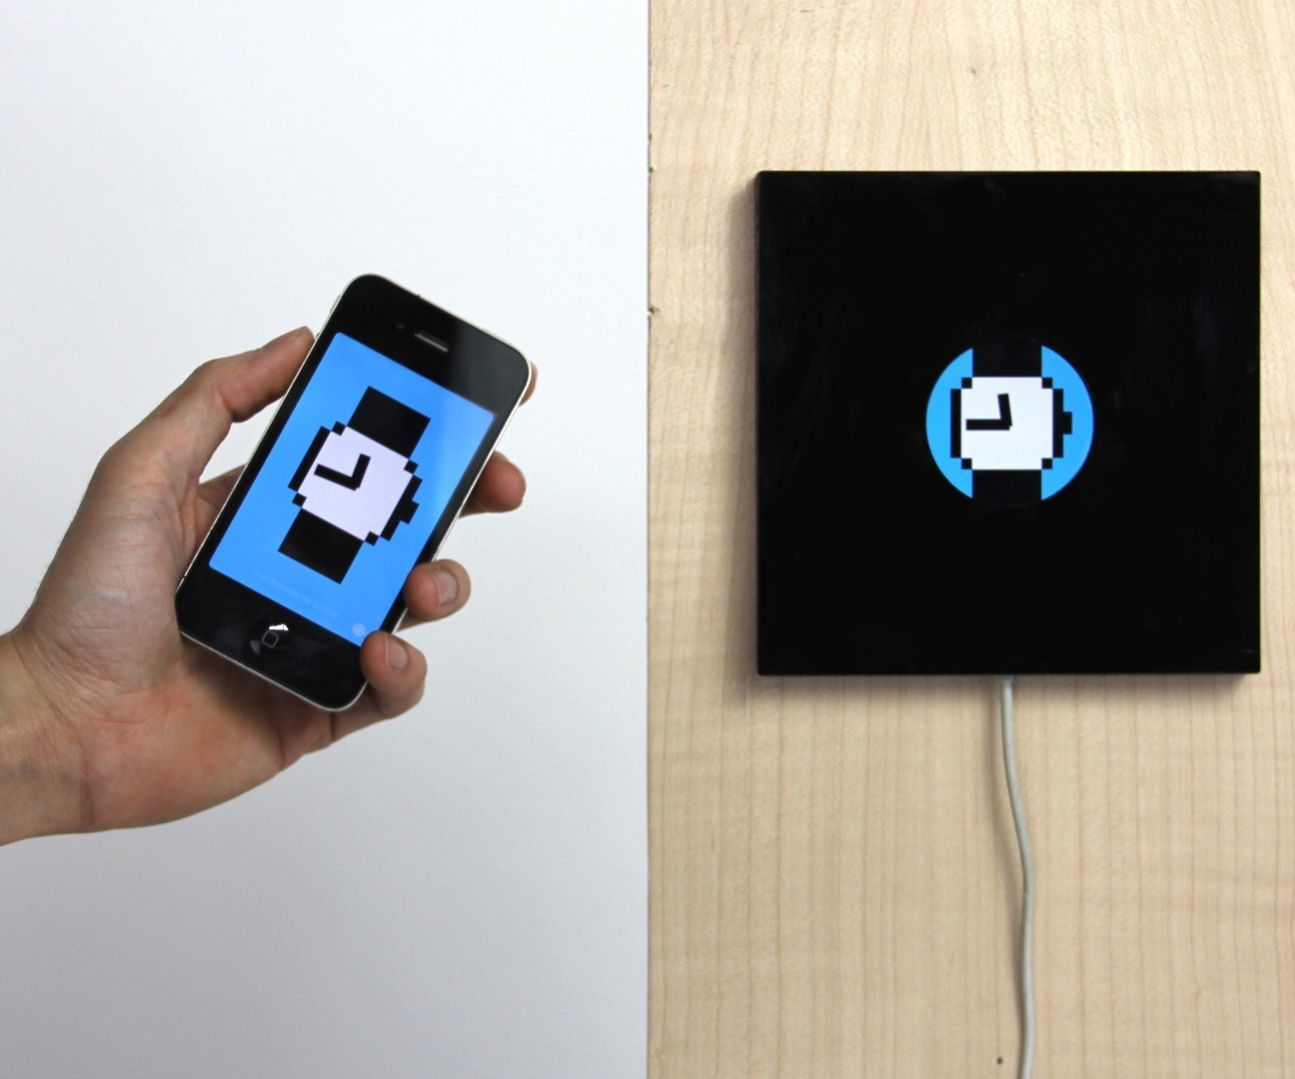 Reframe: Turn IPhones Into a Wall Widget